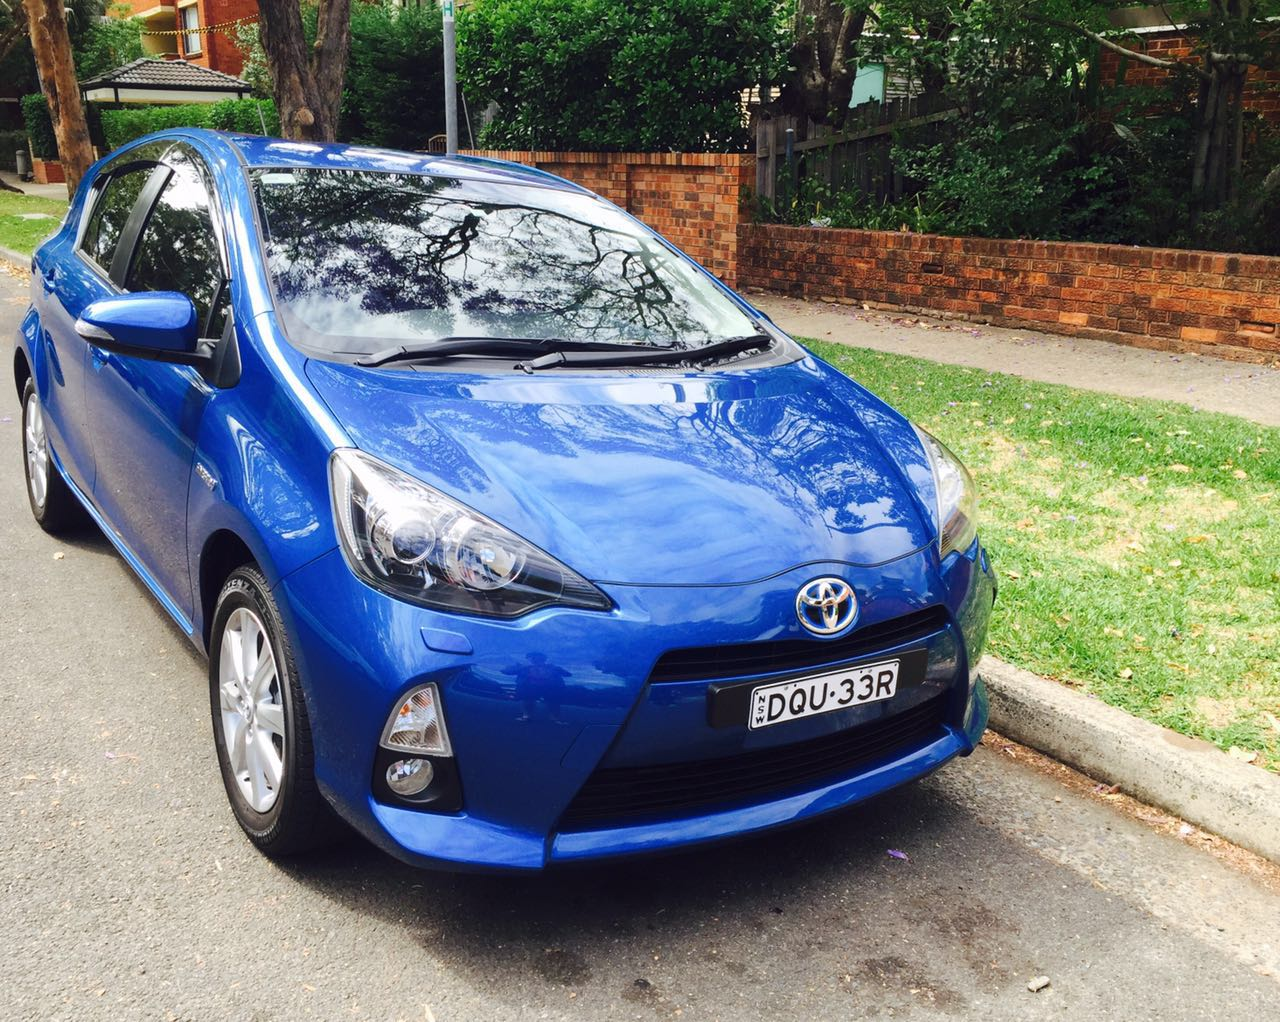 Picture of Shiqin's 2014 Toyota Prius c i-Tech